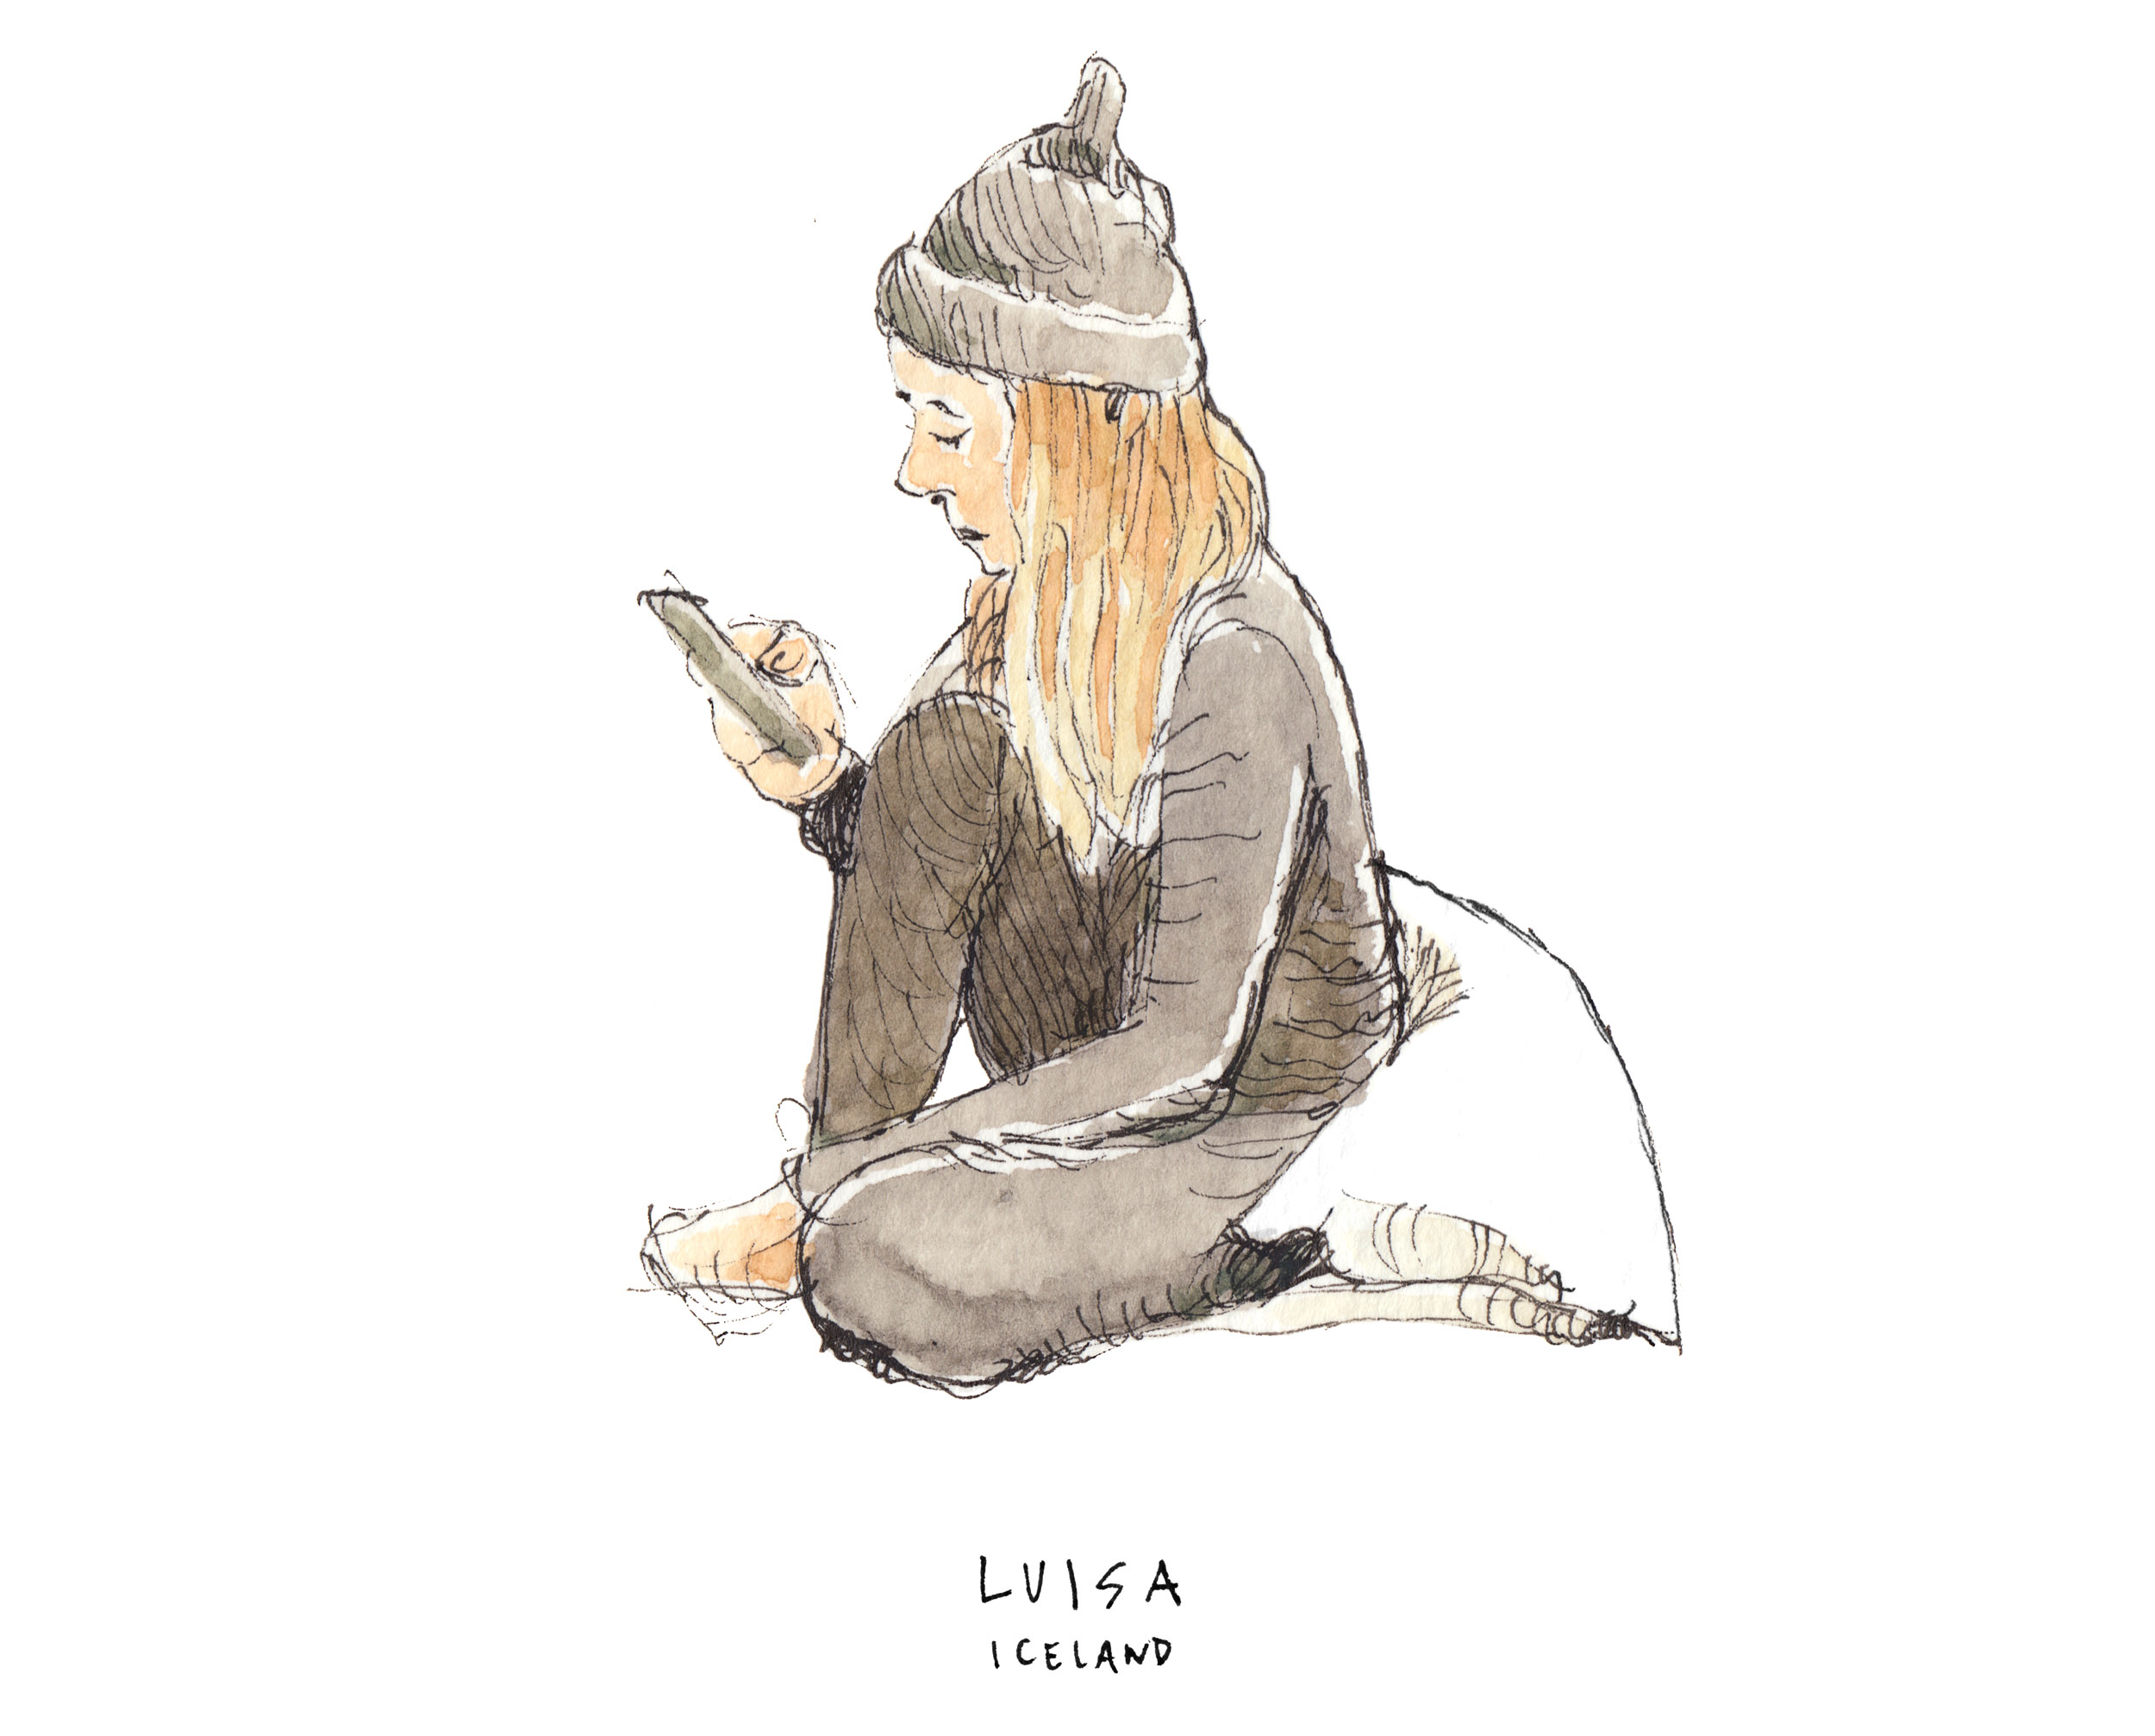 Sketch of Luisa Salles during our trip around Iceland for We Just Wanted Free Internet.